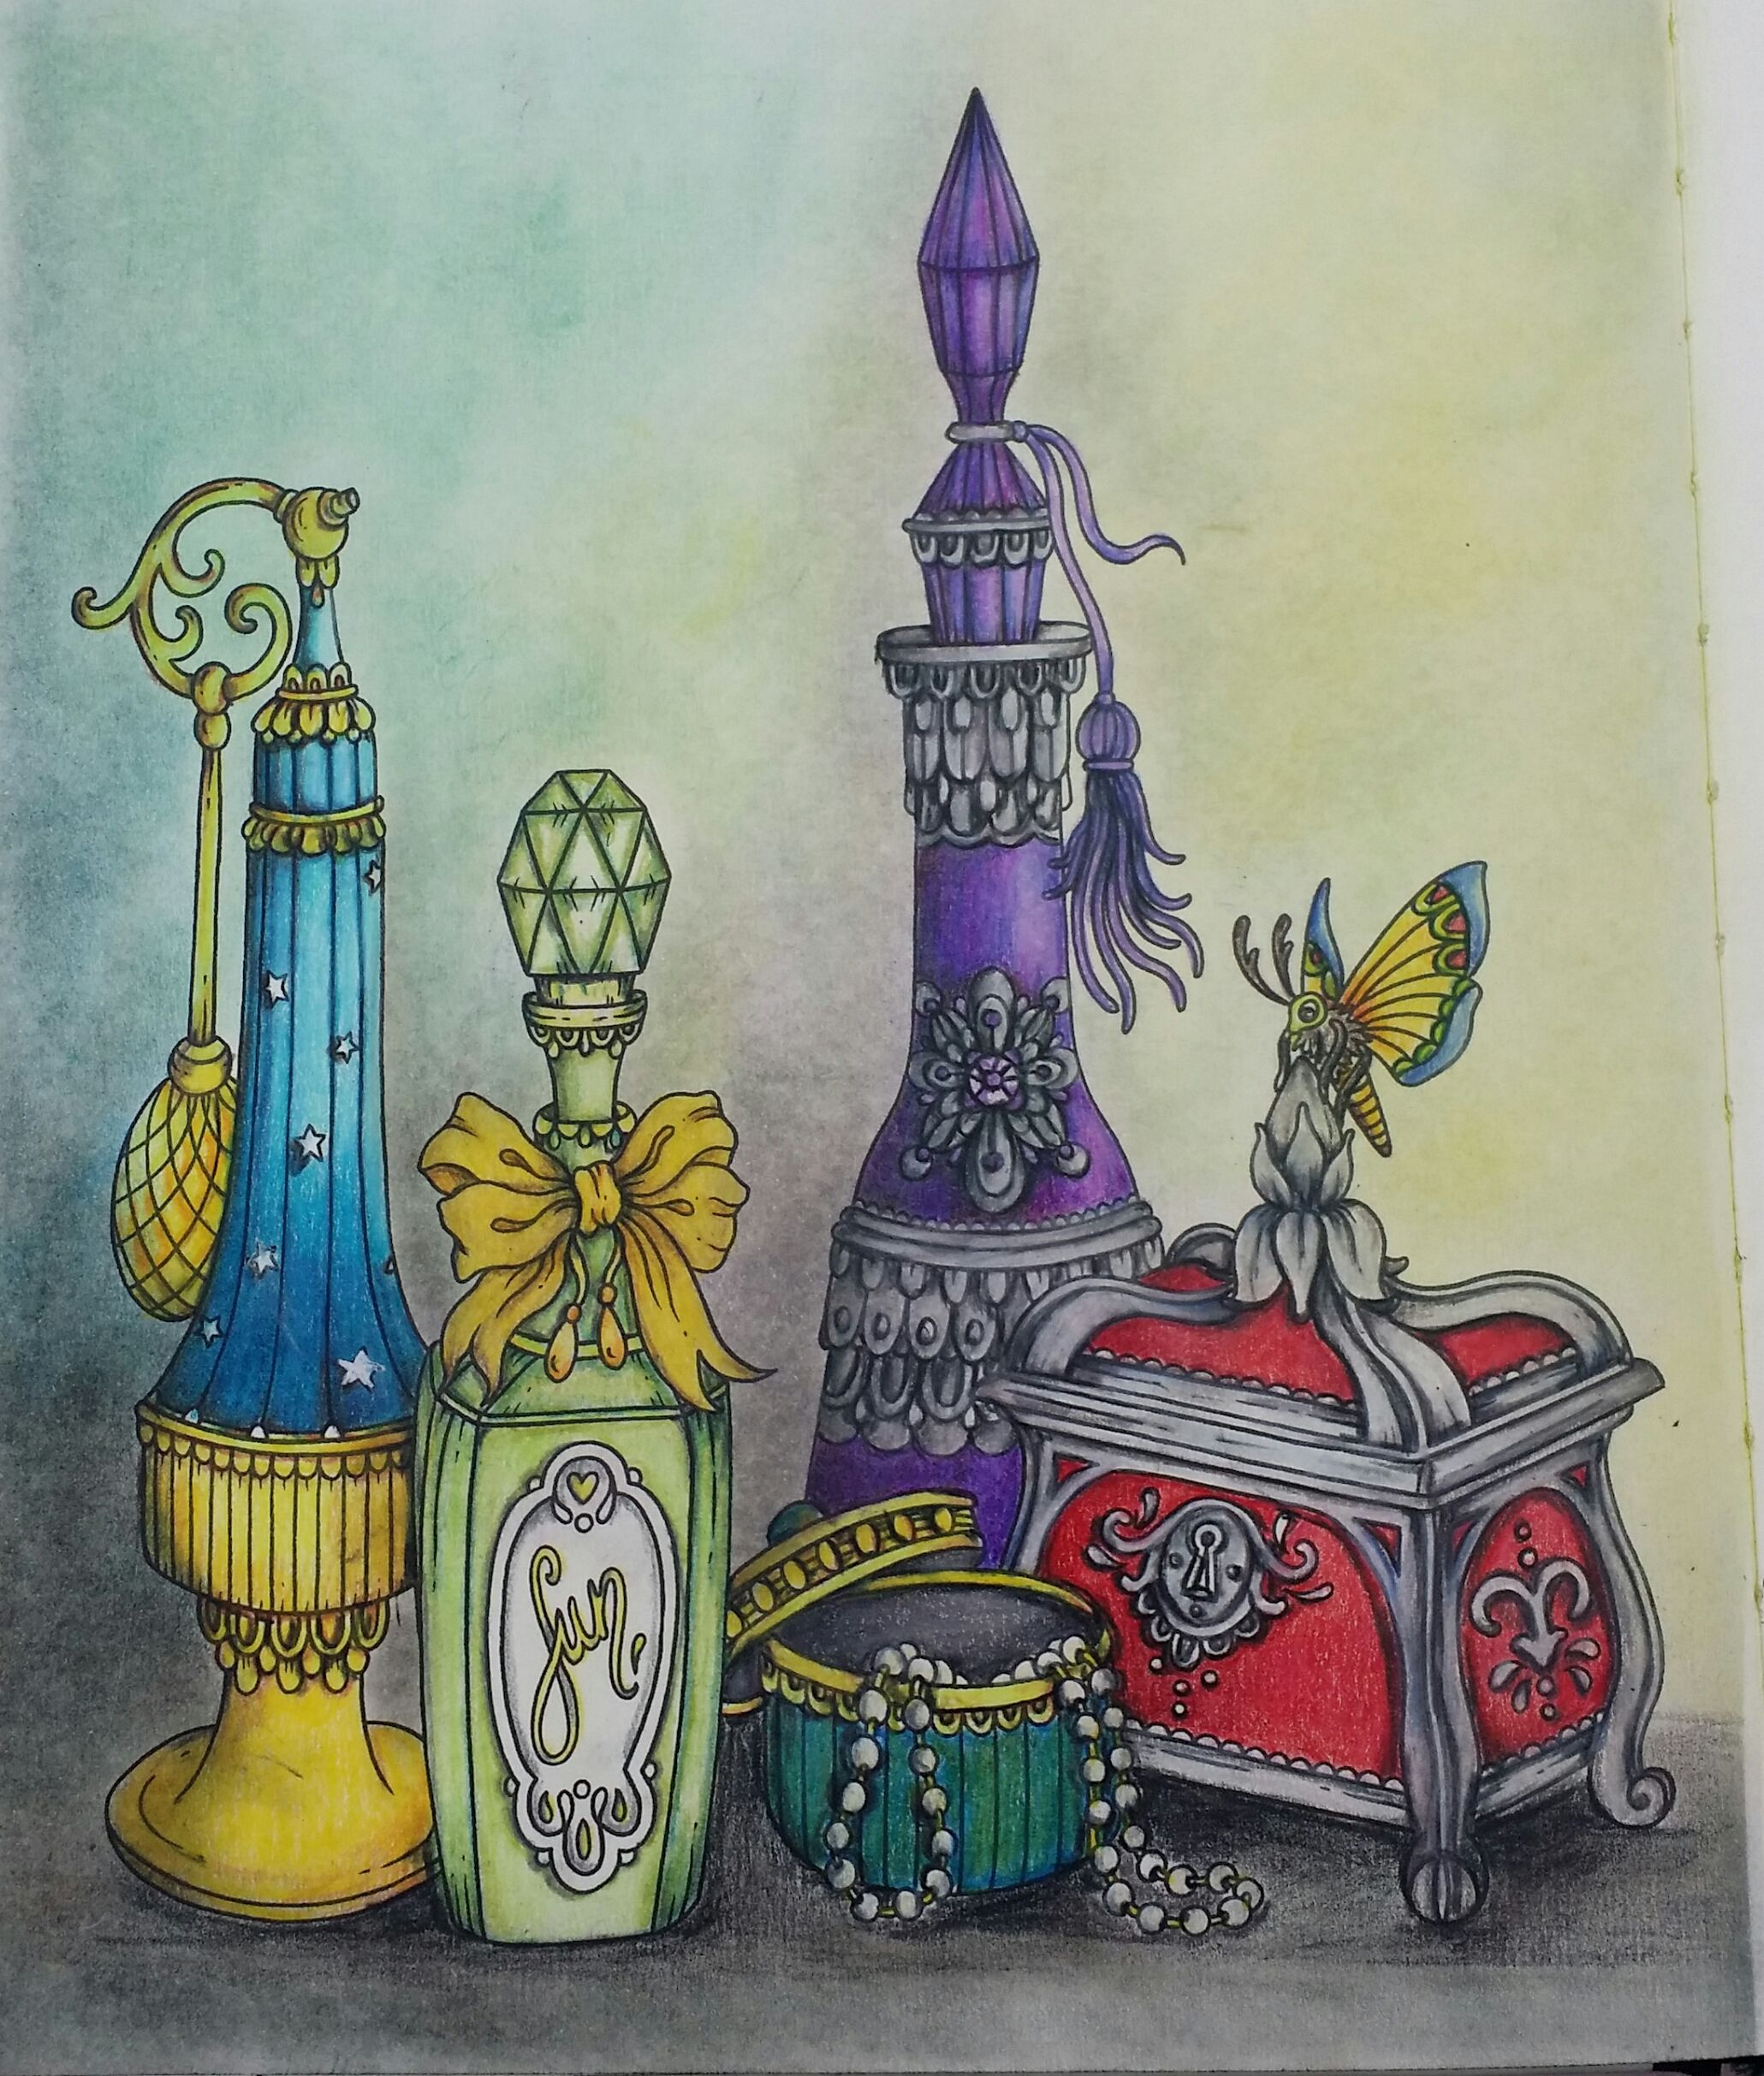 Hanna Karlzon Jewelry Box Juwelenkistje Coloring By Scrappymoments Ria Steampunk Coloring Colorful Drawings Coloring Books